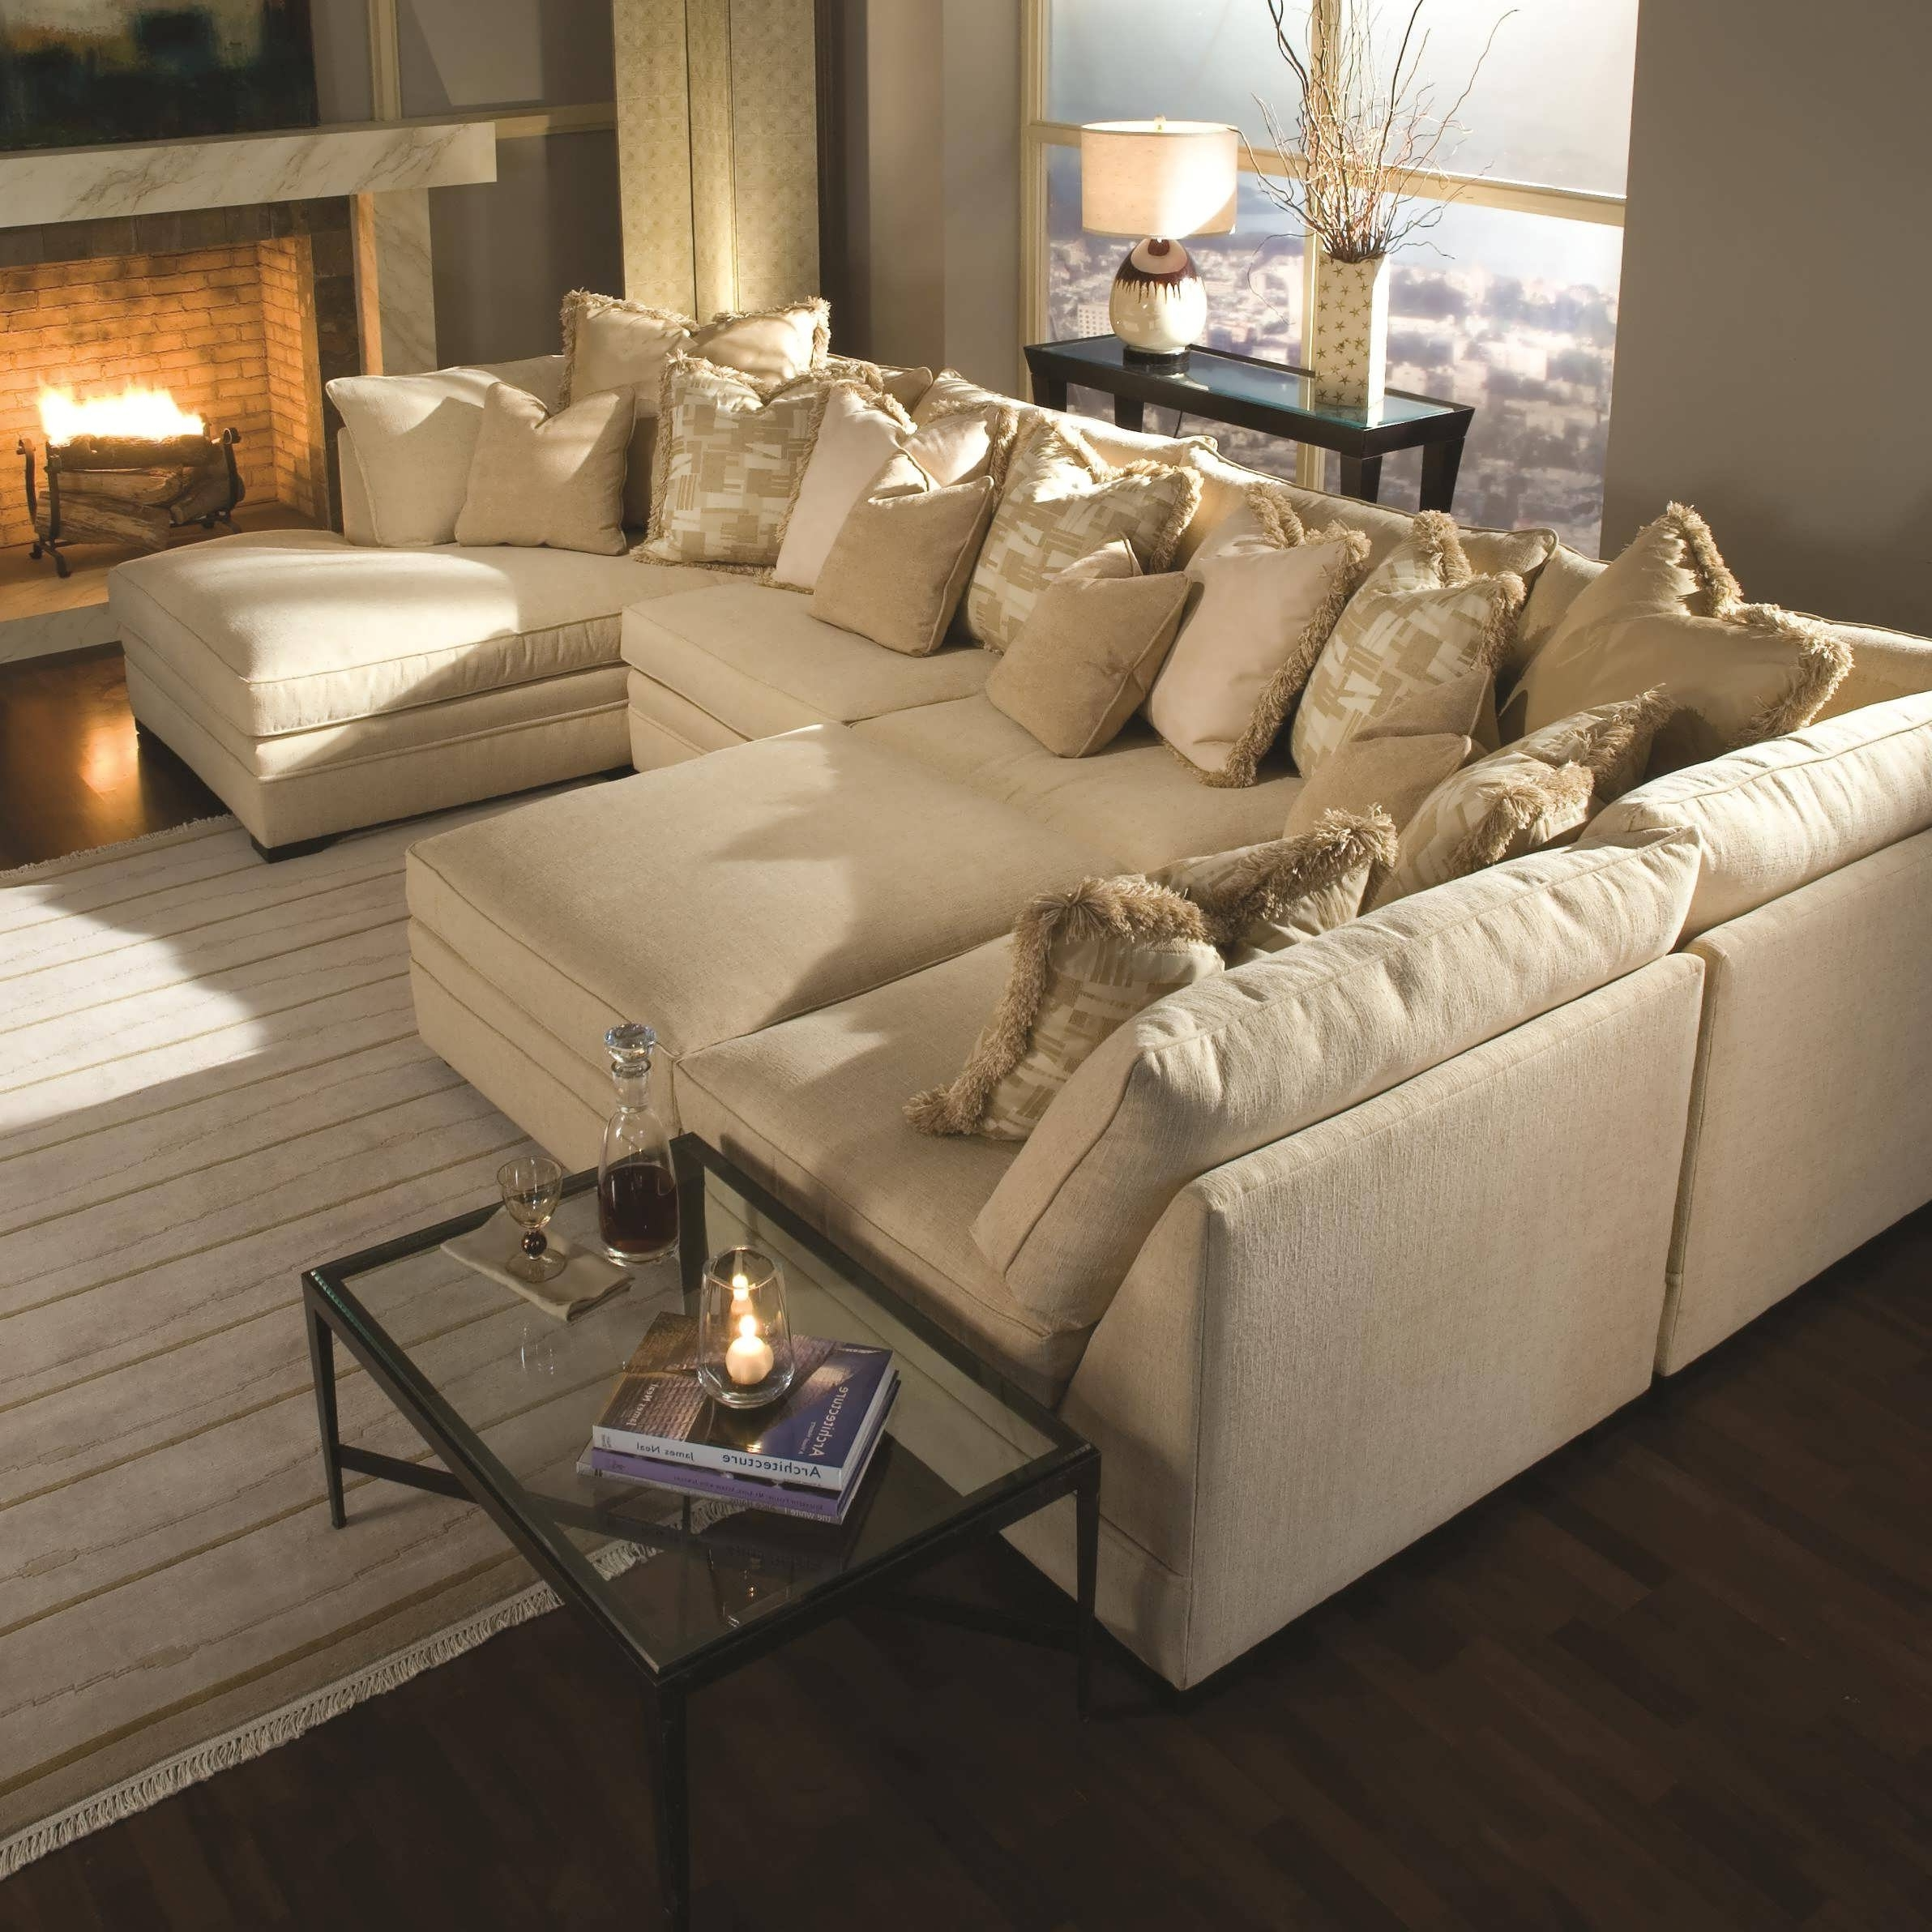 L Shaped Couches With Chaise Throughout Newest Sofa : L Shaped Couch Chaise Sofa Small Sectional Sofa Sectional (View 9 of 15)